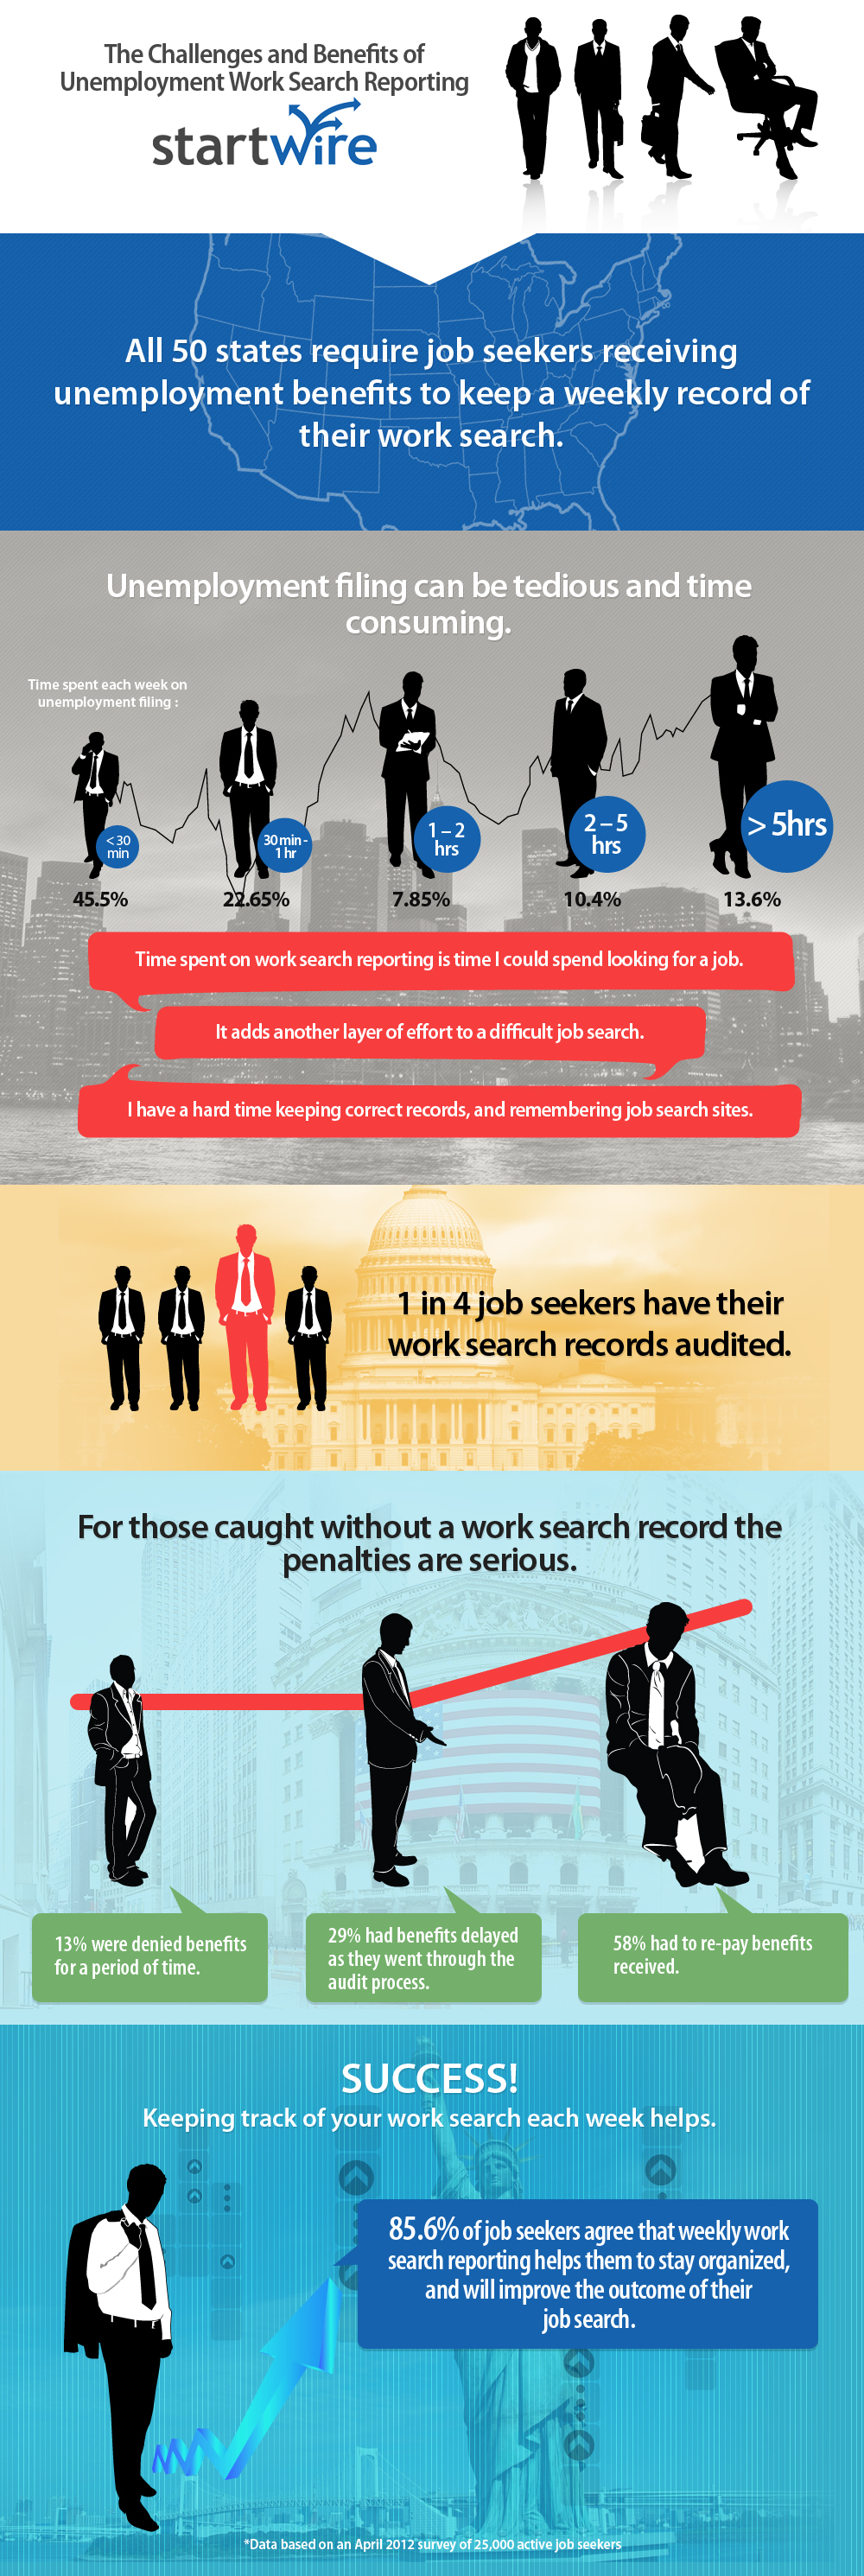 Unemployment work search requirements from